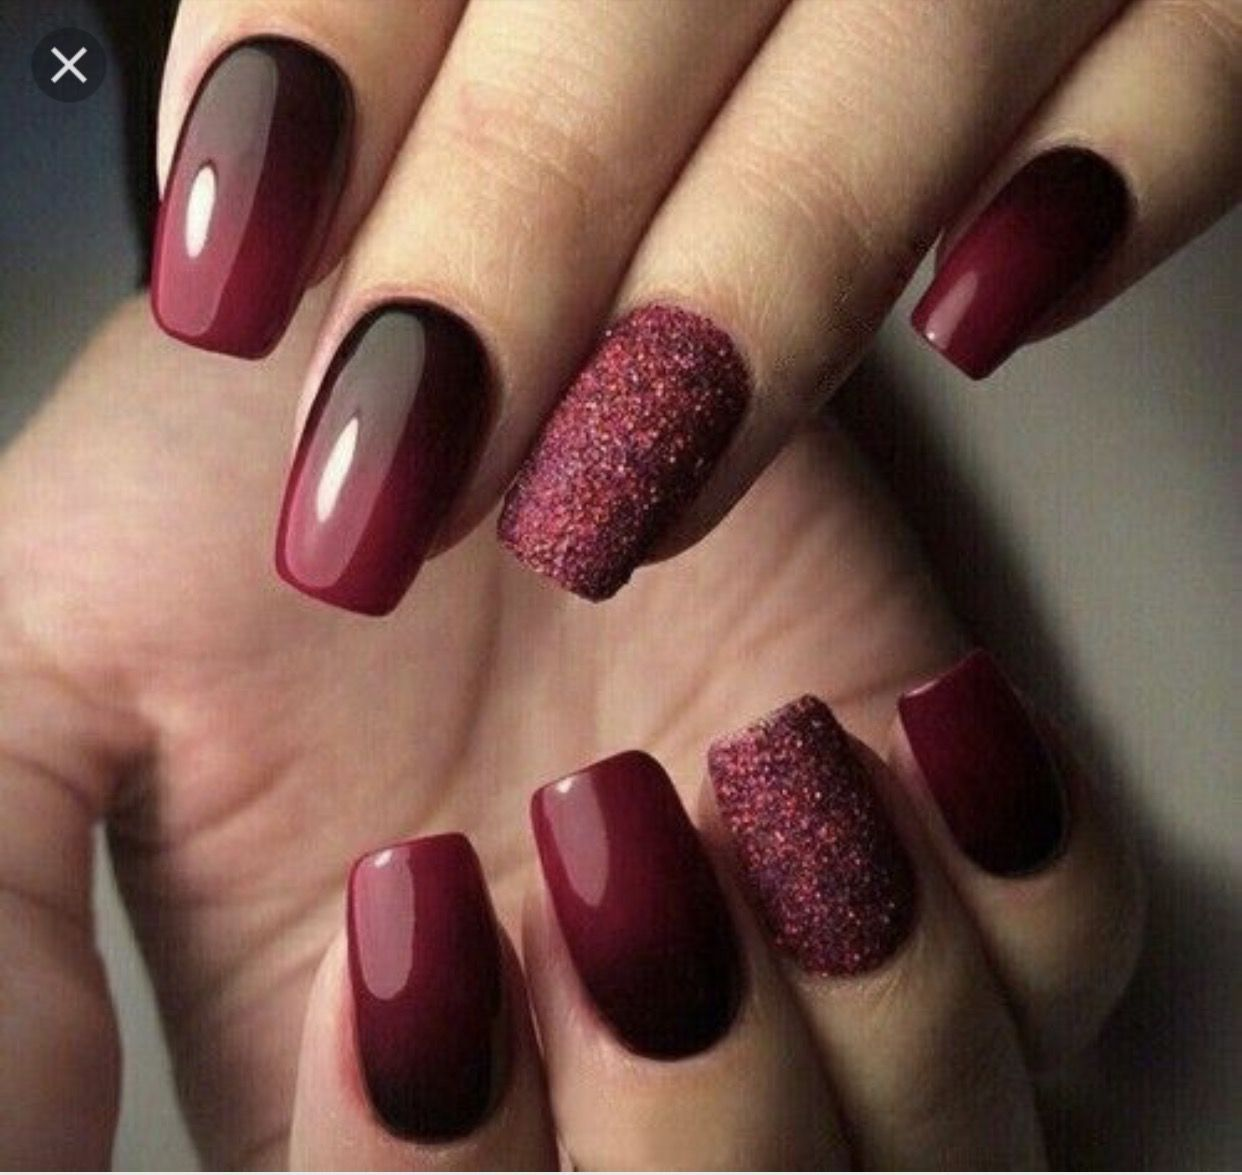 Nice 40 Top Amazing Gel Nail Art Of 2019 Http Vattire Com Index Php 2018 12 20 40 Top Amazing Gel Nail Art O Manicure Nail Designs Nail Art Ombre Ombre Nails